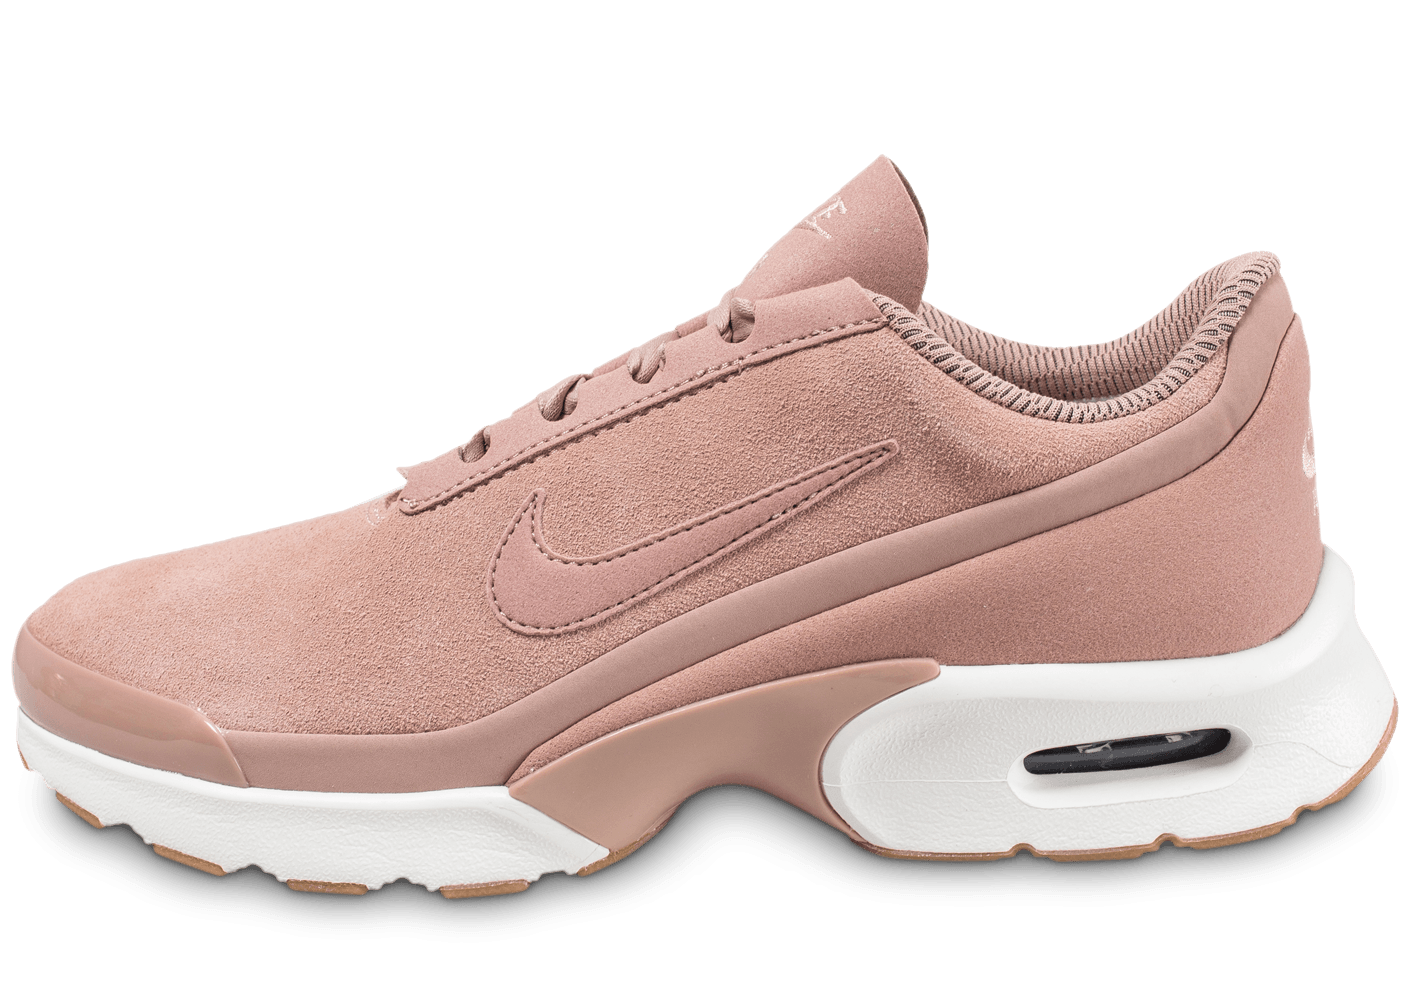 nike air max jewell rose particle pink chaussures femme. Black Bedroom Furniture Sets. Home Design Ideas